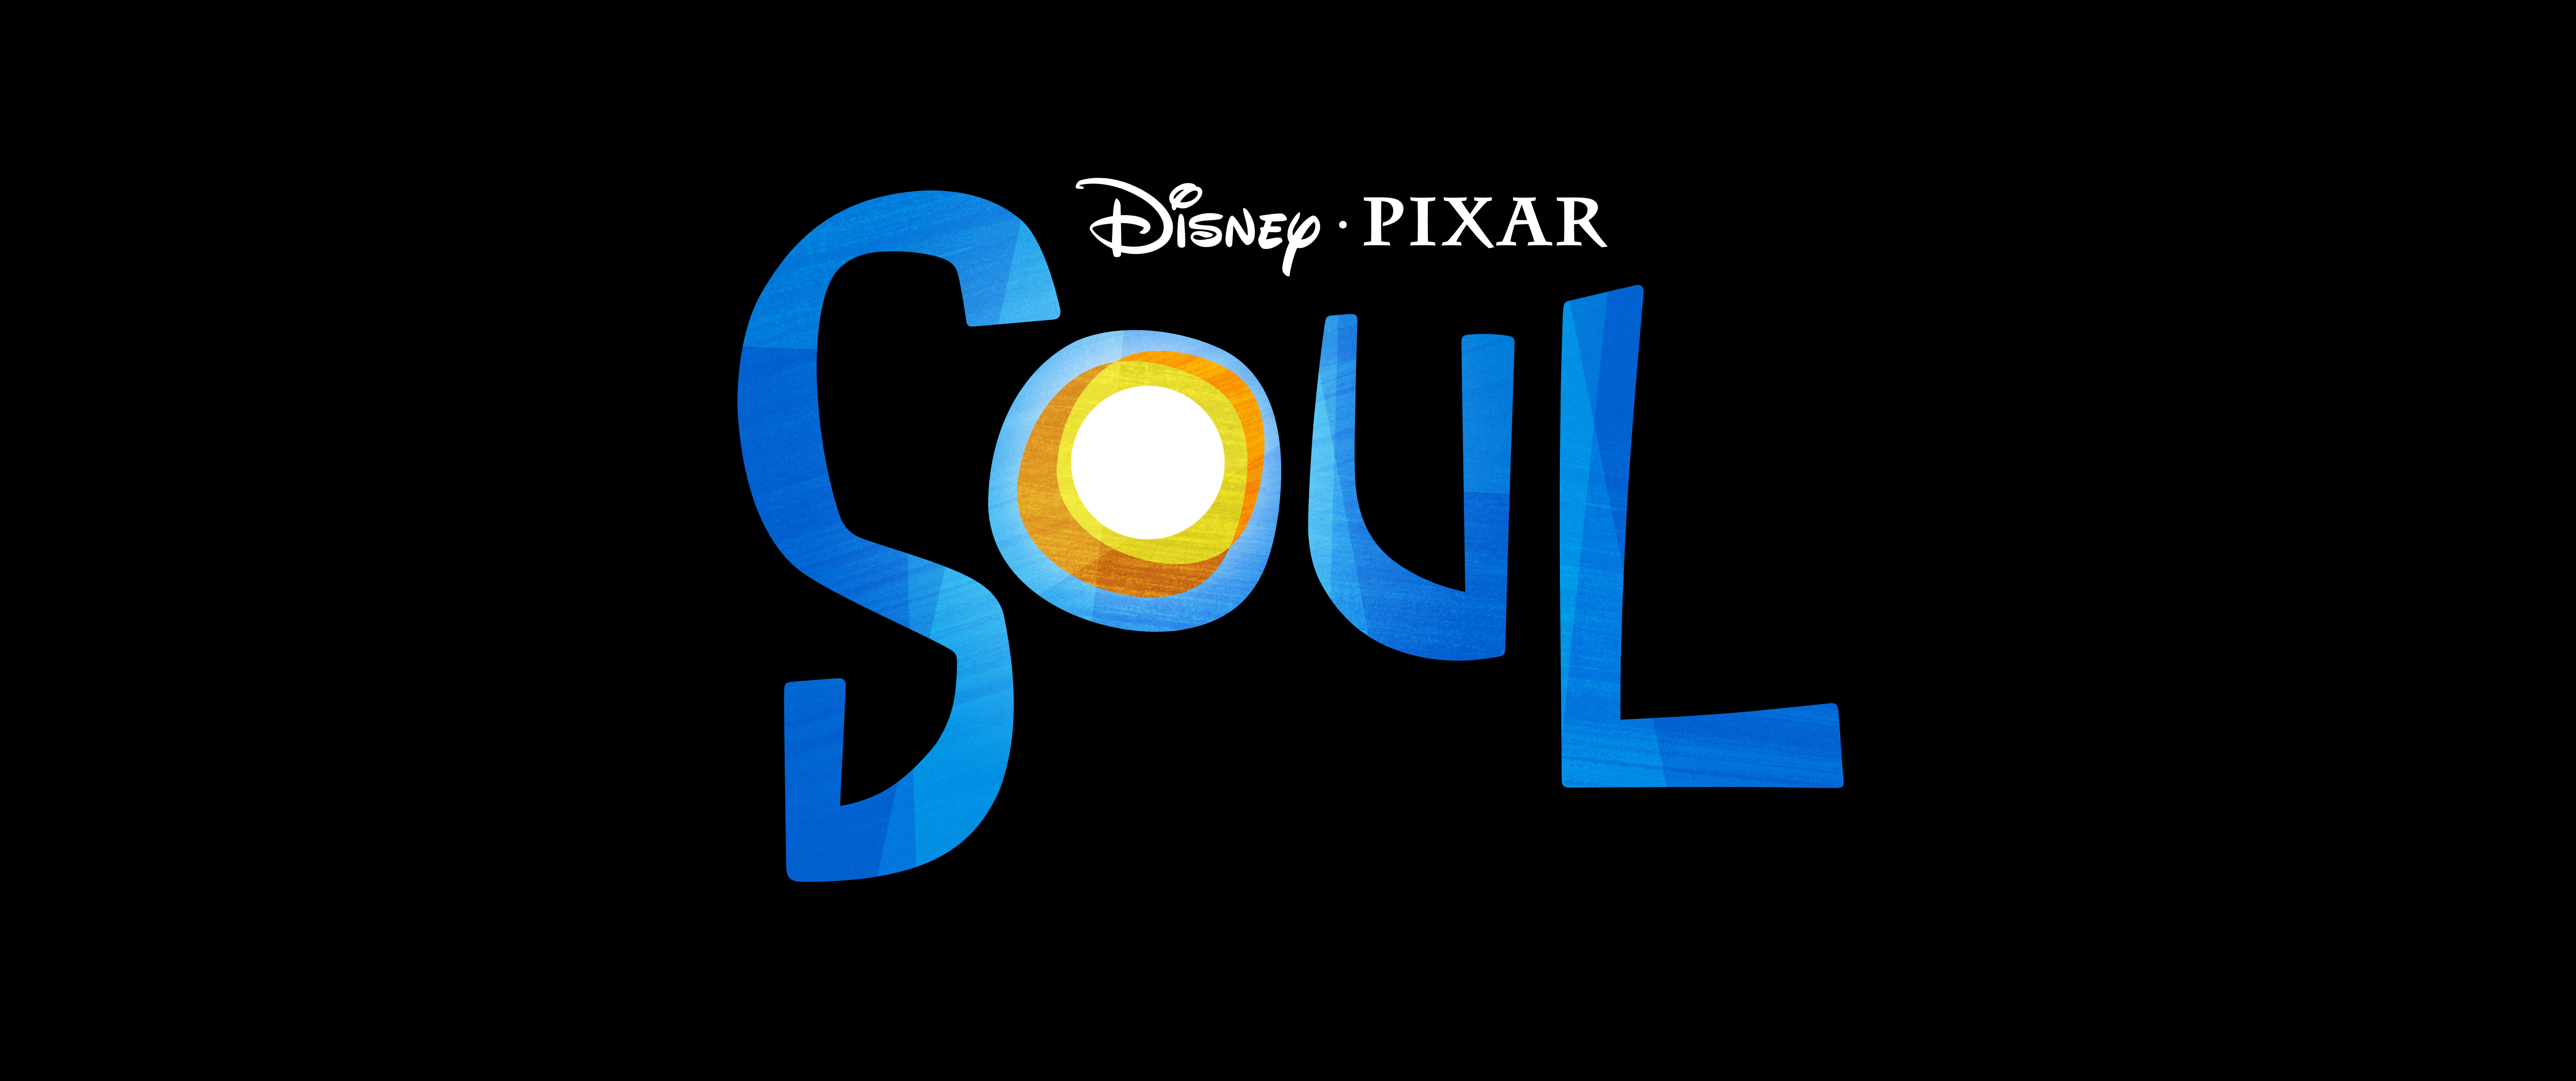 Disney/Pixar SOUL Debuting on Disney+ December 25th!